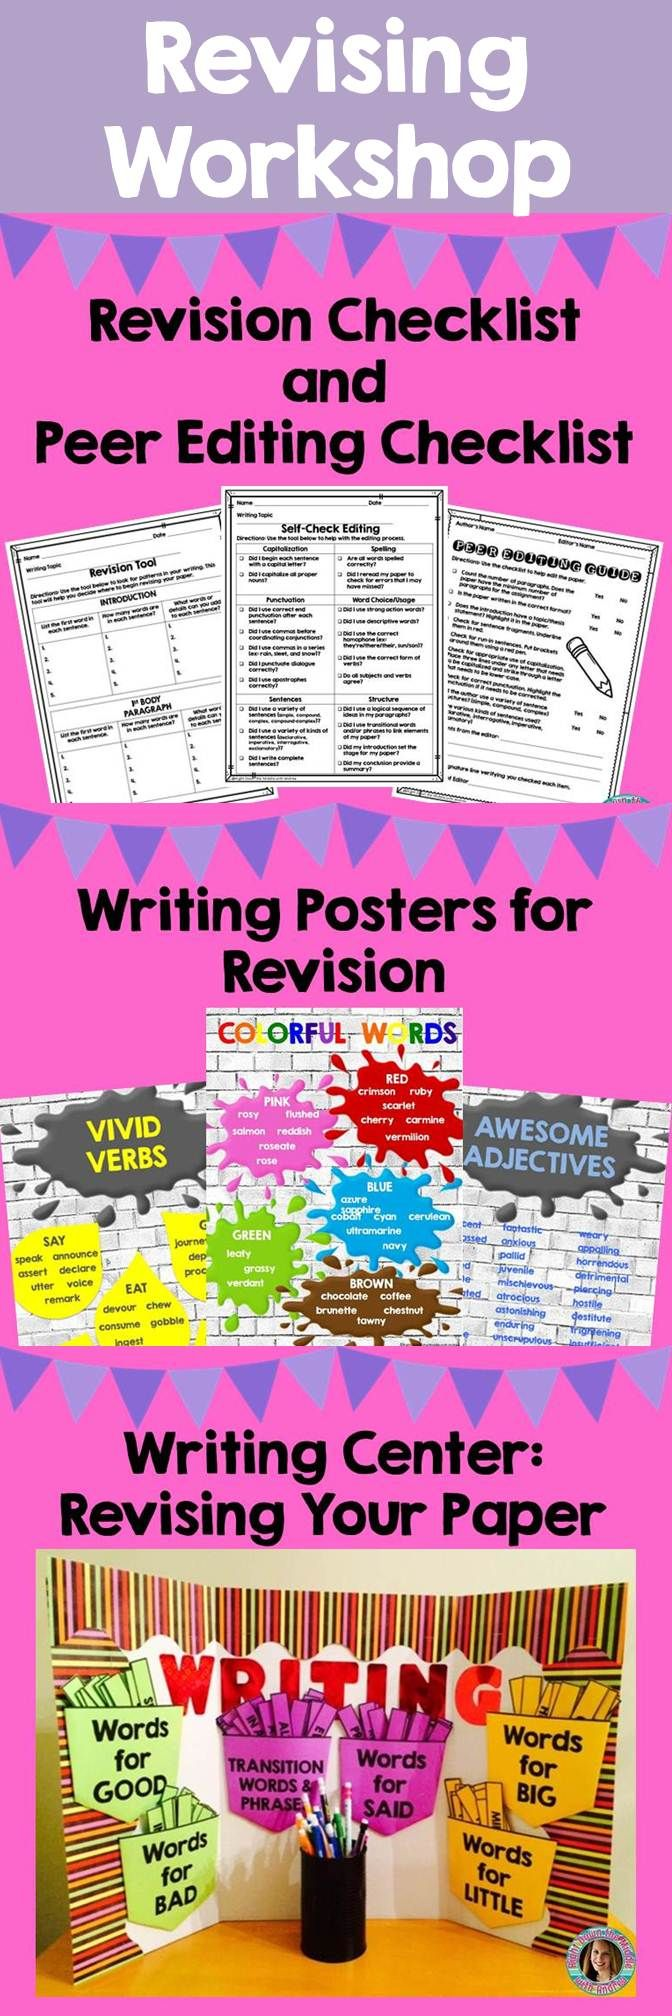 Revising and editing can be a fun, engaging activity with this resource. Editing checklists for self and peer, posters for revision, and materials for a writing center all make this complete. Your students will love it! Right Down the Middle with Andrea